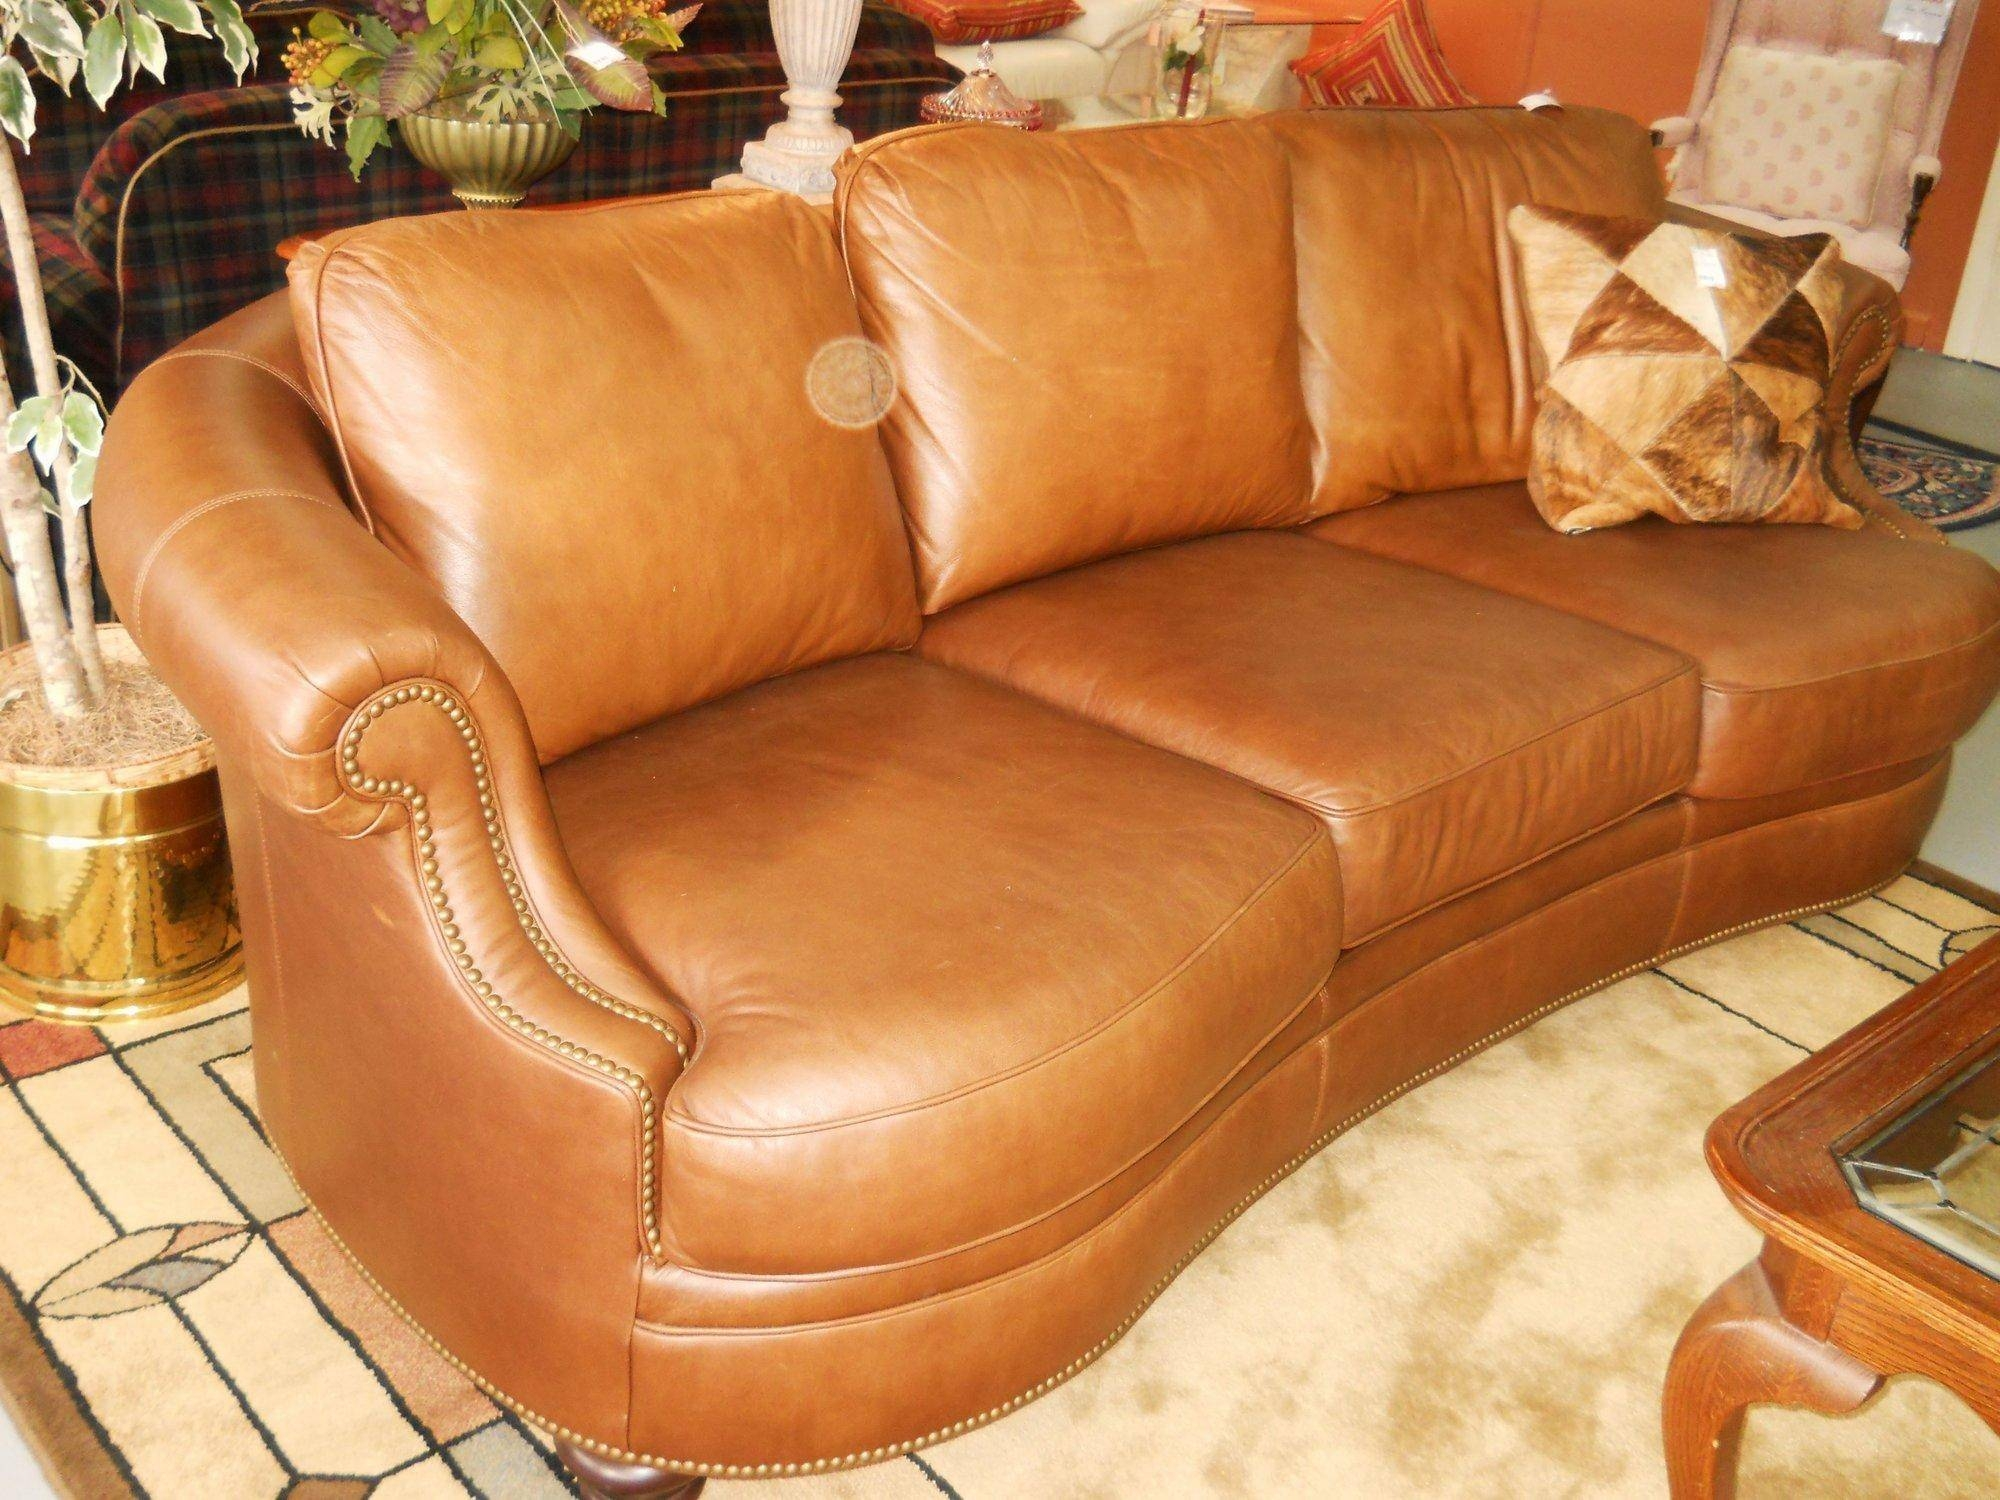 20 Top Camel Color Leather Sofas | Sofa Ideas for Camel Colored Leather Sofas (Image 1 of 15)